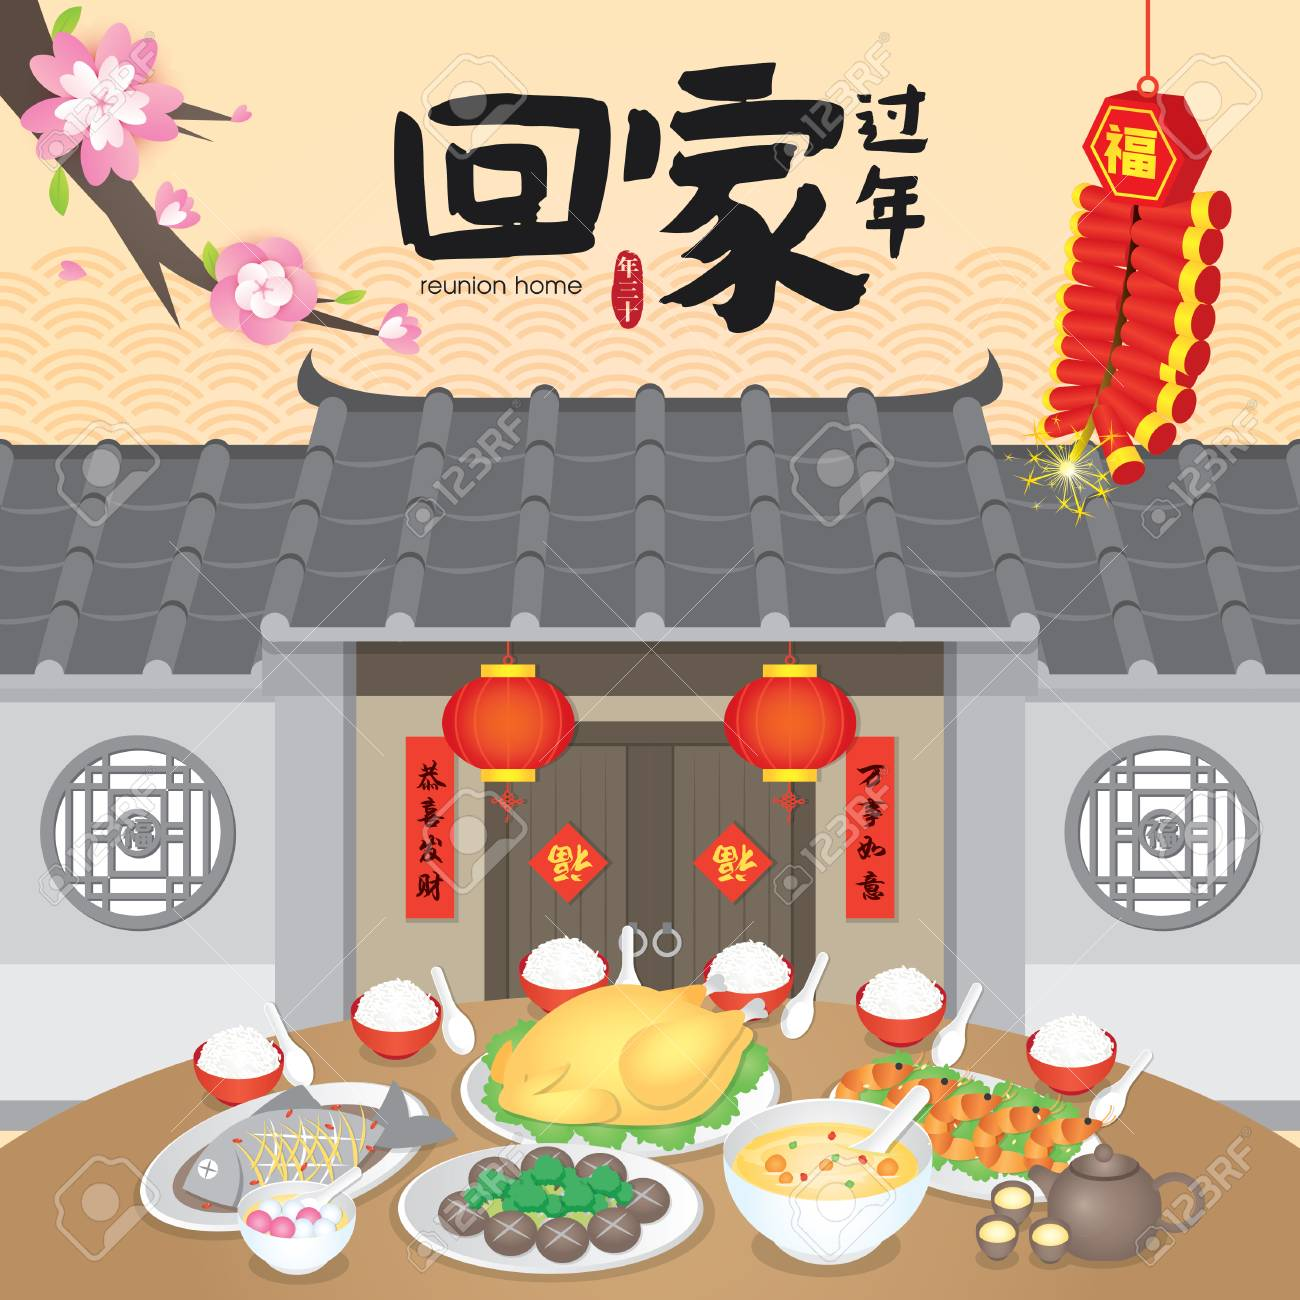 Chinese New Year Return Home Reunion Vector Illustration (Translation: Return Home Reunion for Chinese New Year) - 114078818